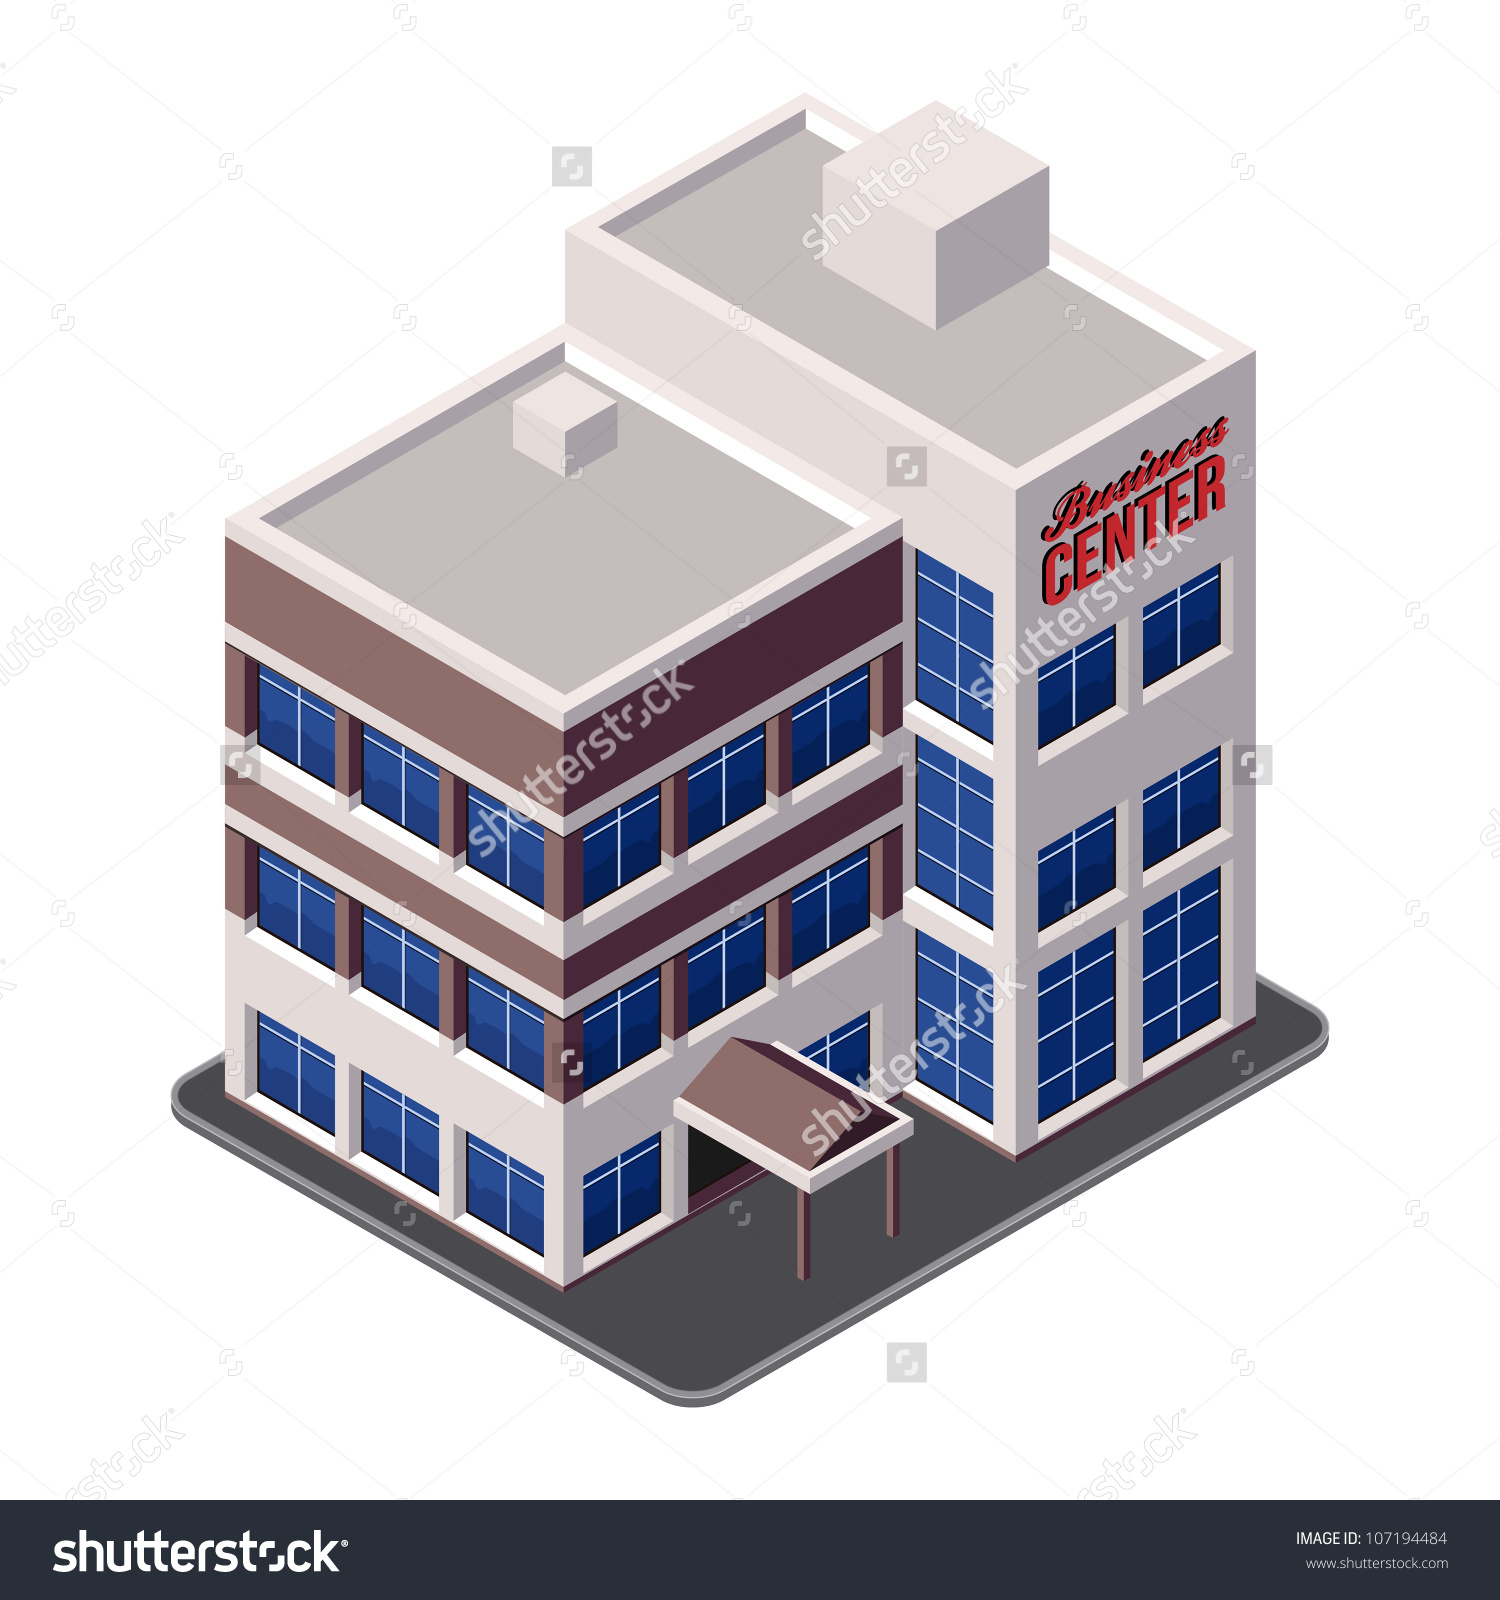 Office clipart corporate building Icon 3d Clipart Office Of